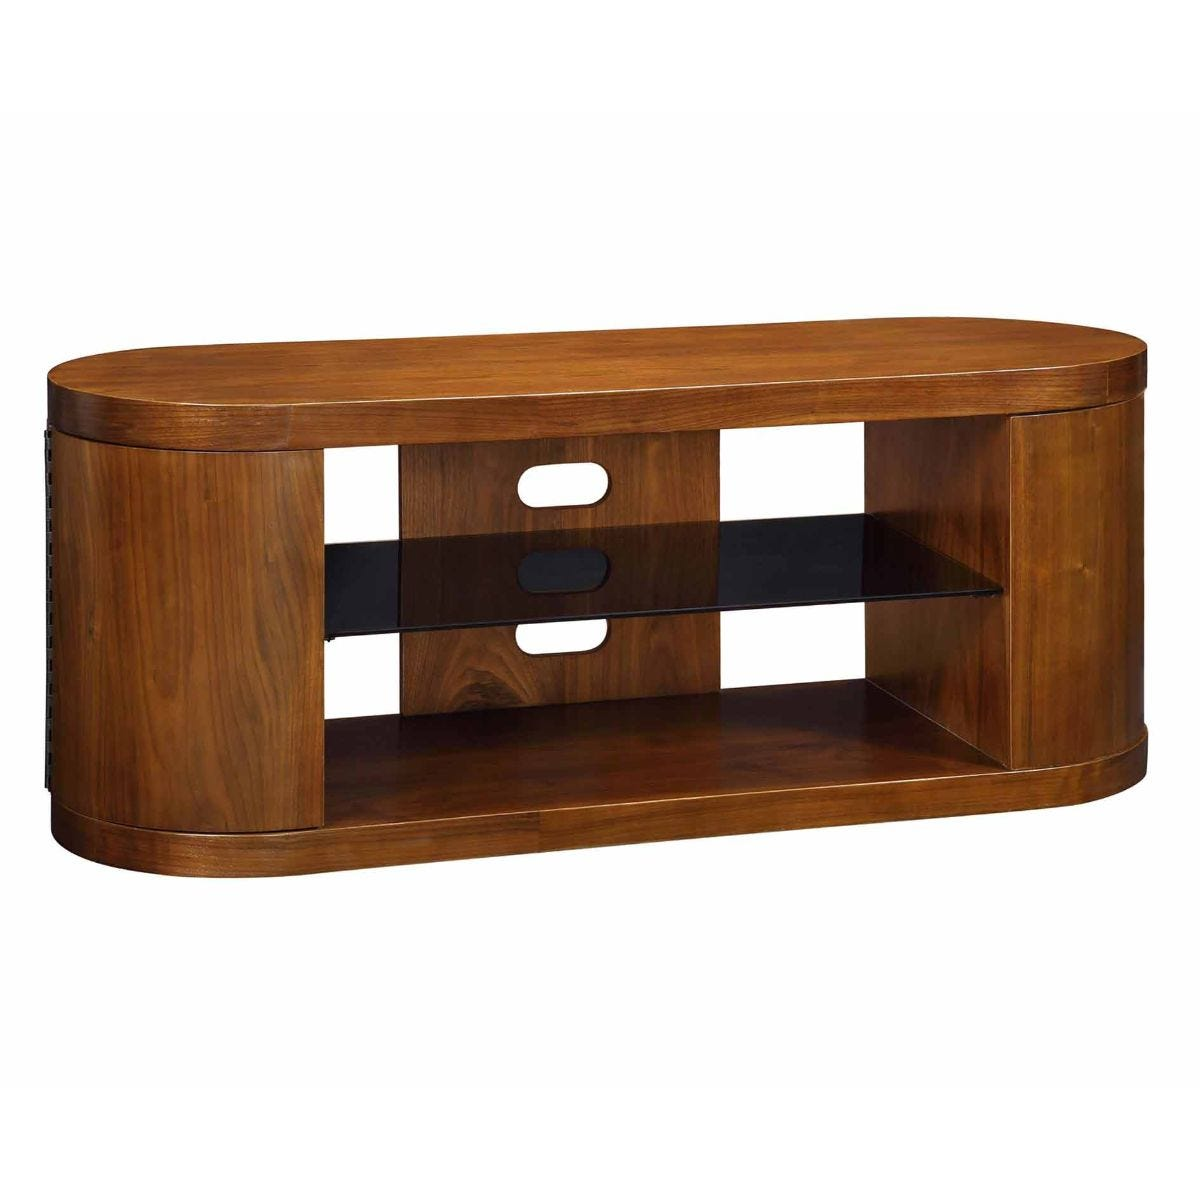 Jual Florence Curve Walnut TV Stand with Cupboards, Walnut